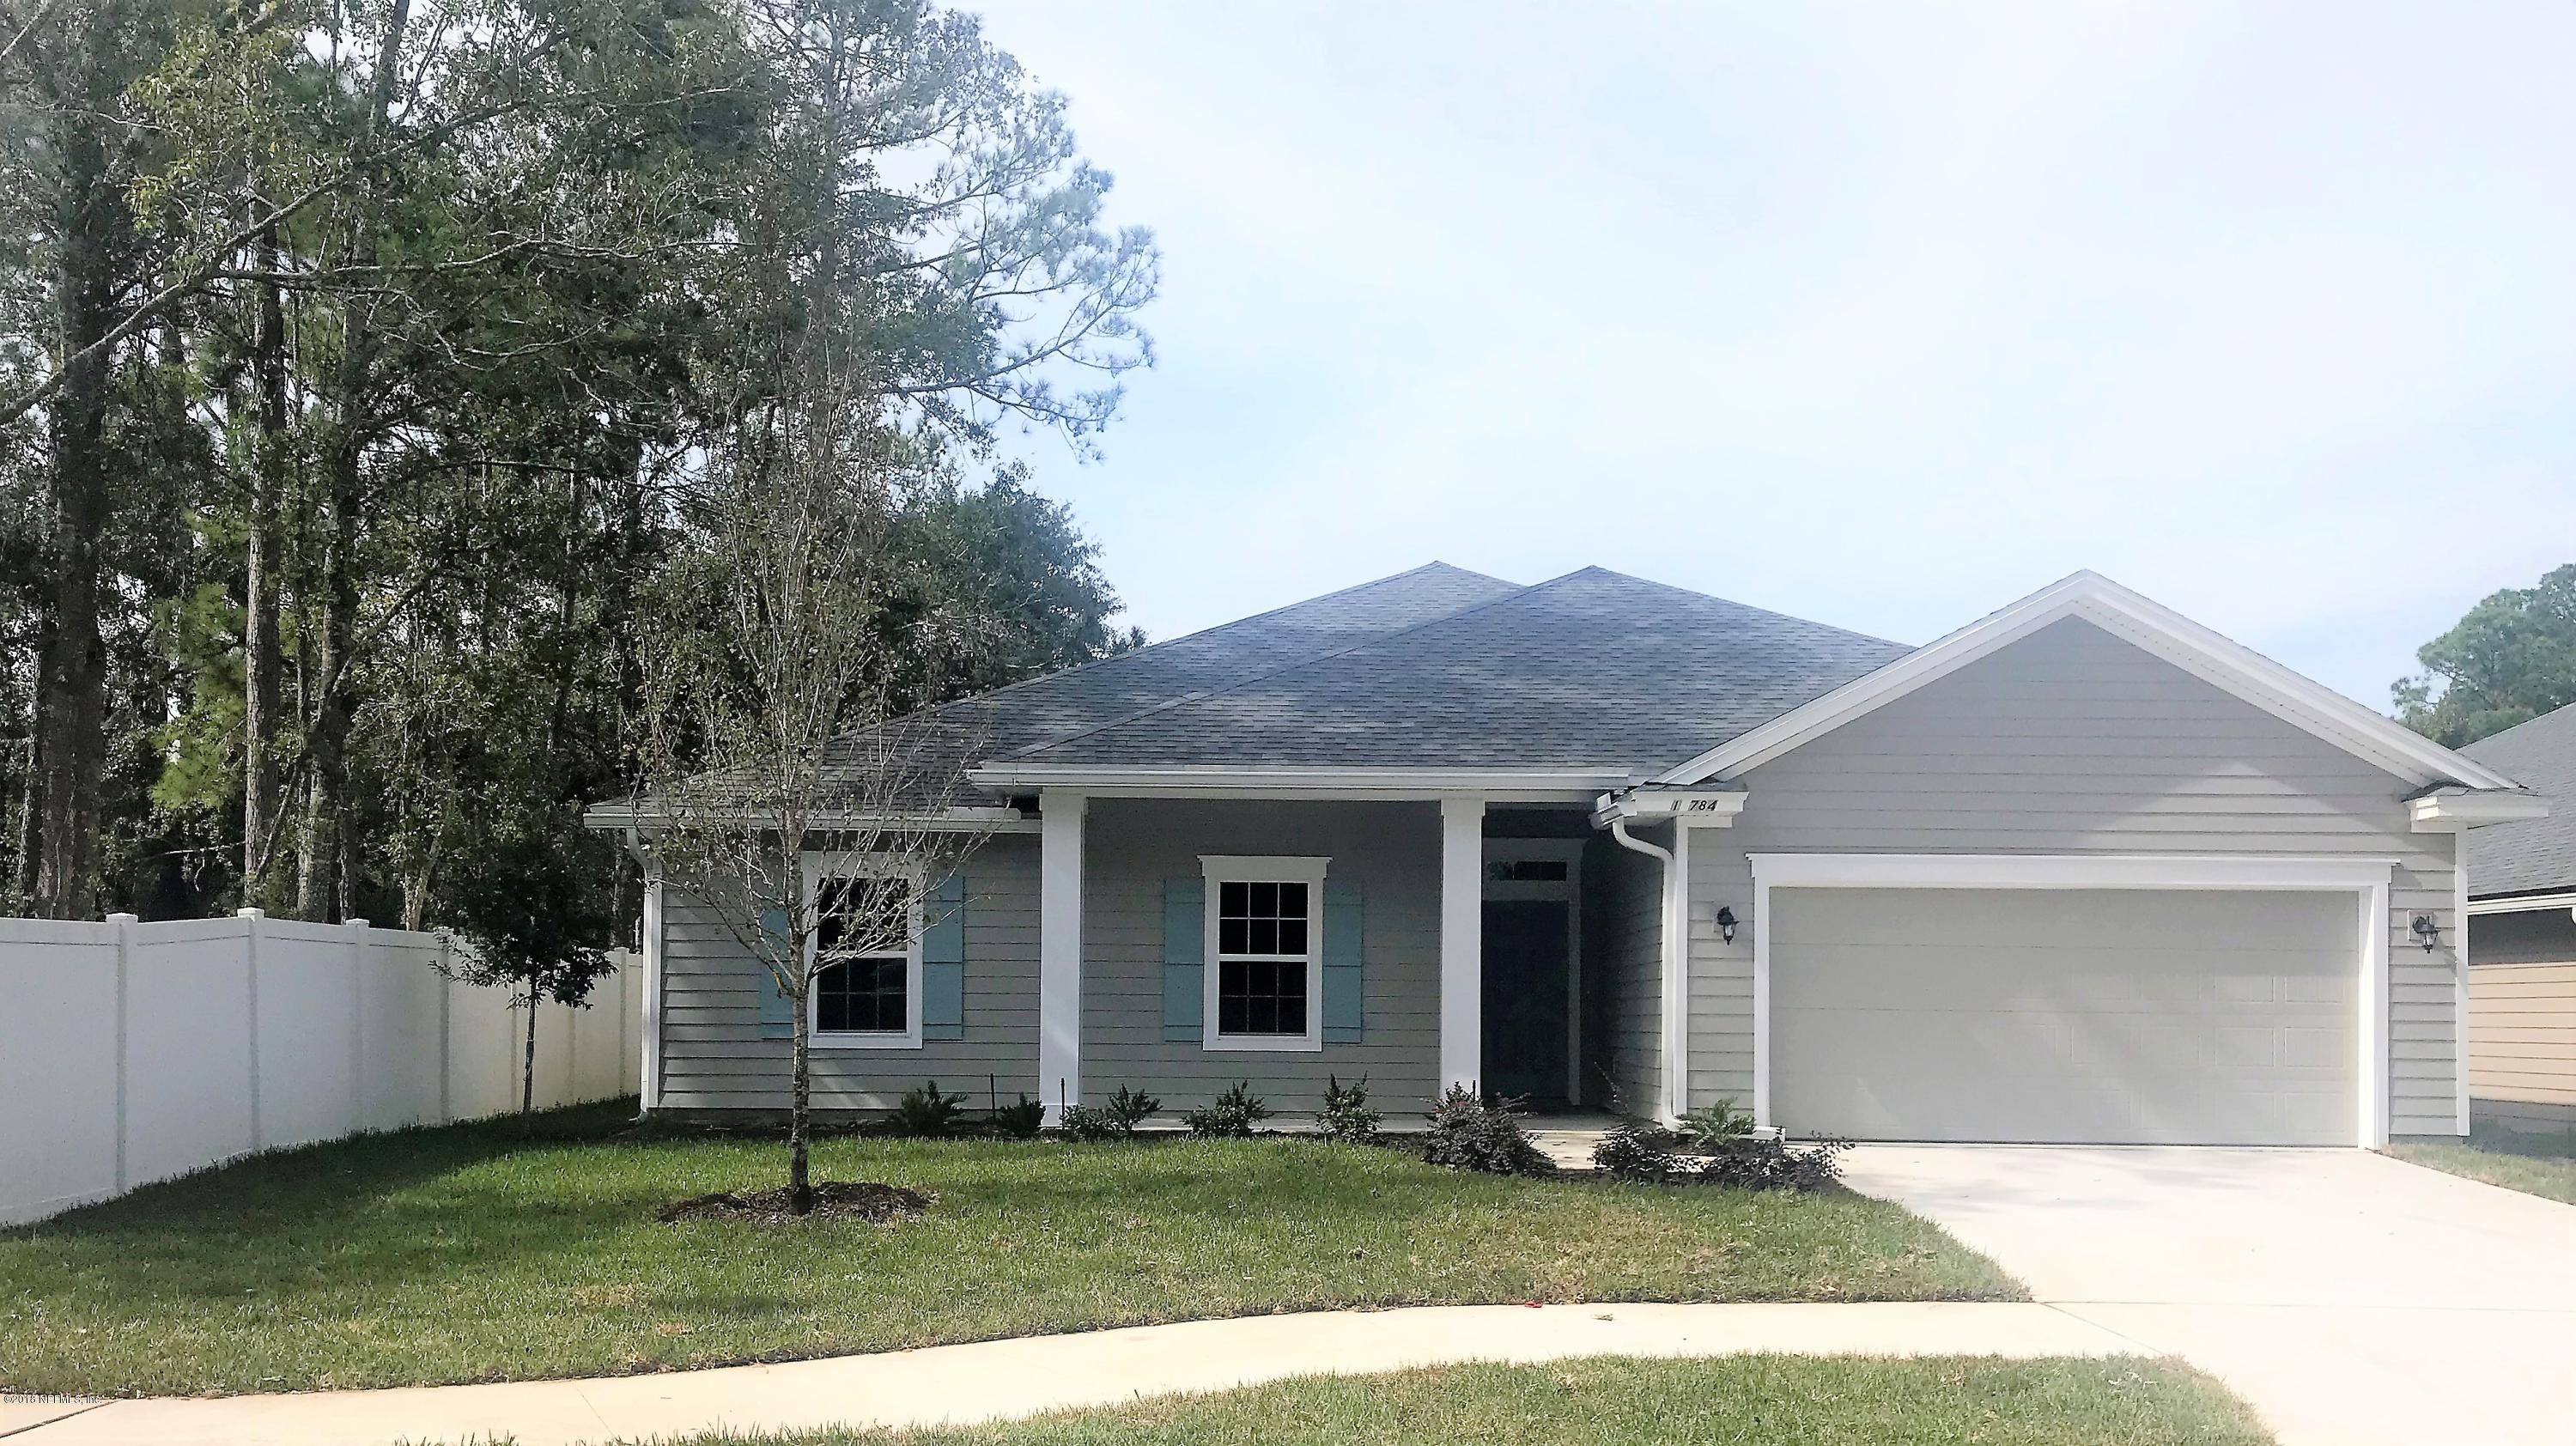 10784 LAWSON BRANCH, JACKSONVILLE, FLORIDA 32257, 4 Bedrooms Bedrooms, ,2 BathroomsBathrooms,Residential - single family,For sale,LAWSON BRANCH,953008